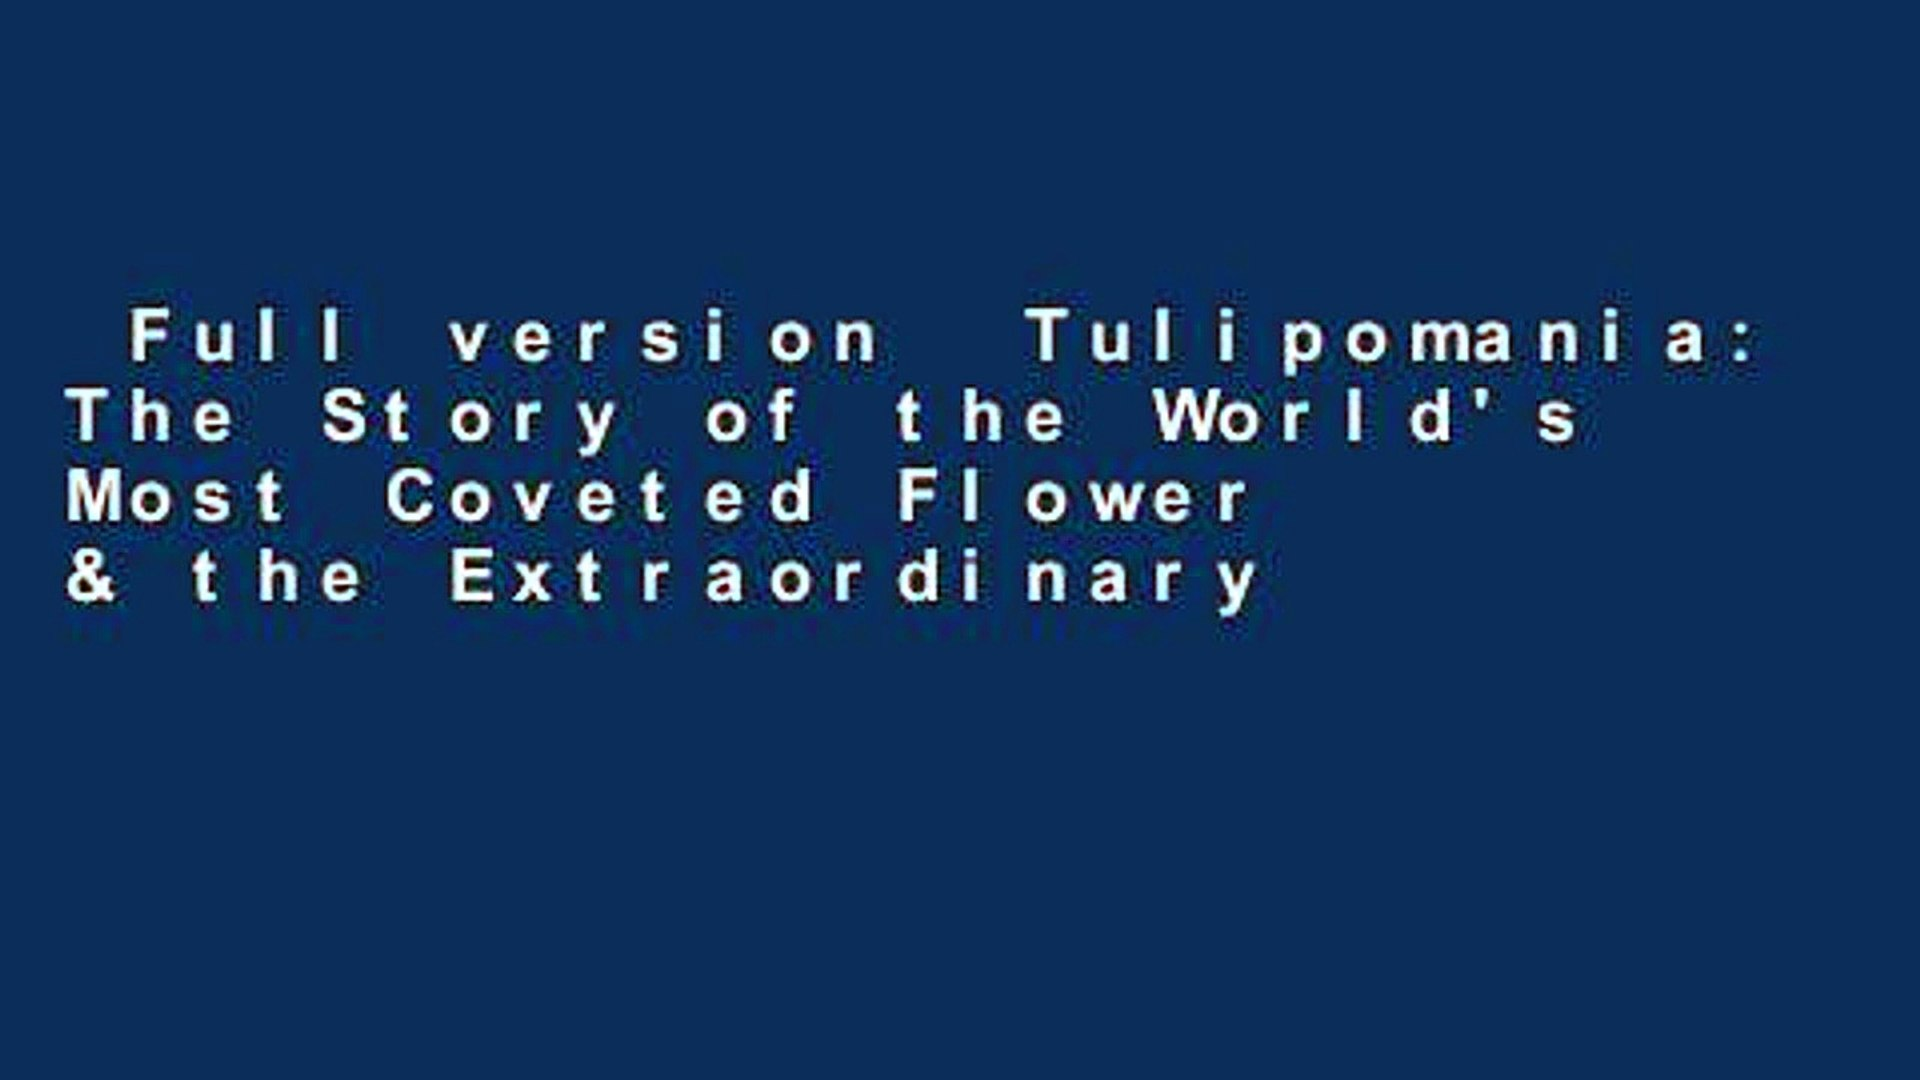 Full version  Tulipomania: The Story of the World's Most Coveted Flower & the Extraordinary